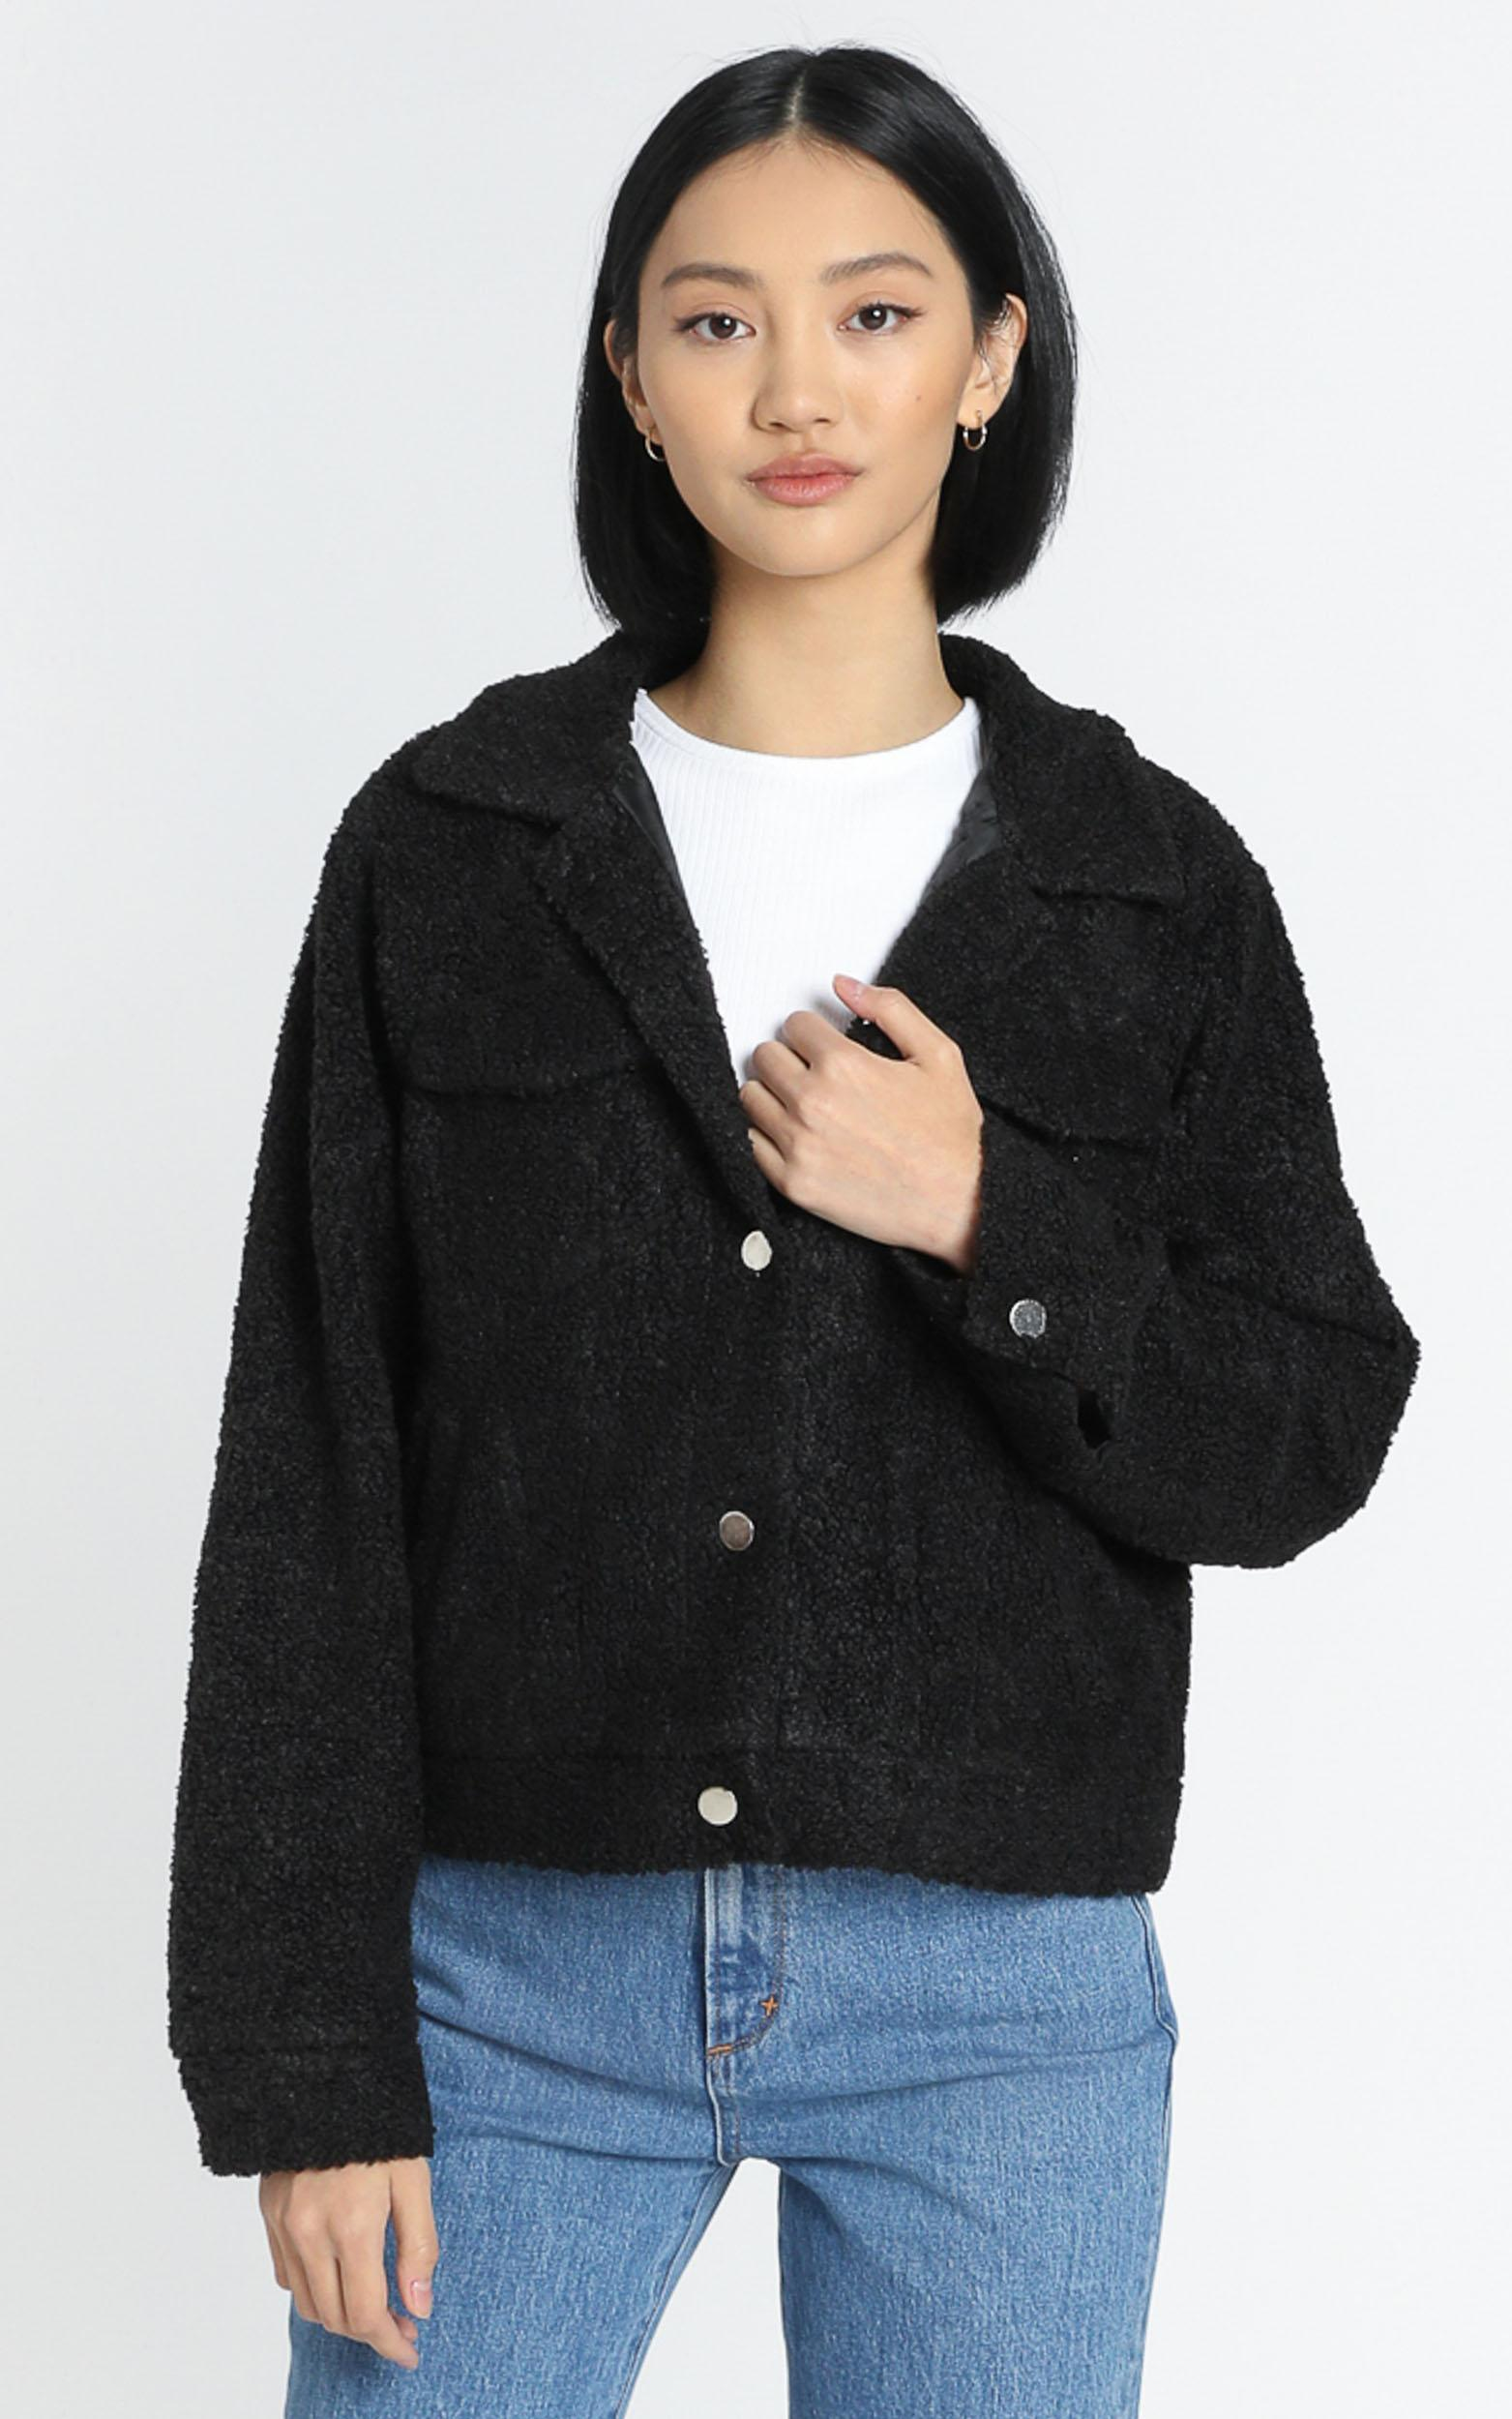 Kerris Jacket in Black - 6 (XS), Black, hi-res image number null